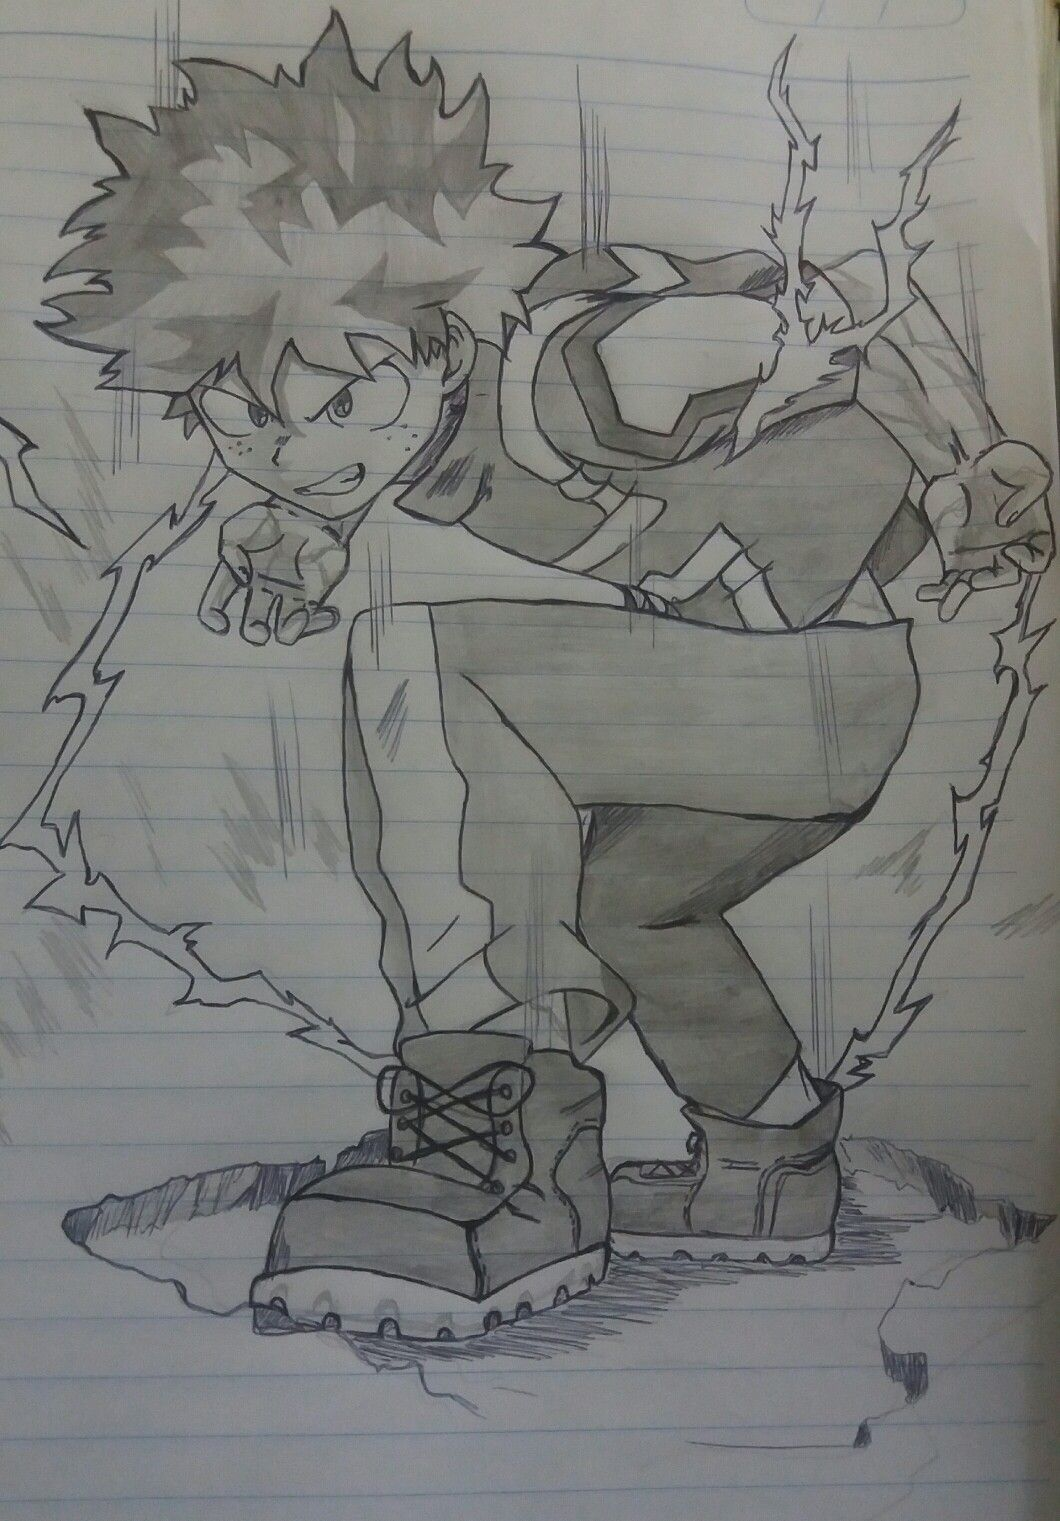 Midoriya My Hero Academia Badass Drawings Anime Character Drawing Anime Drawings